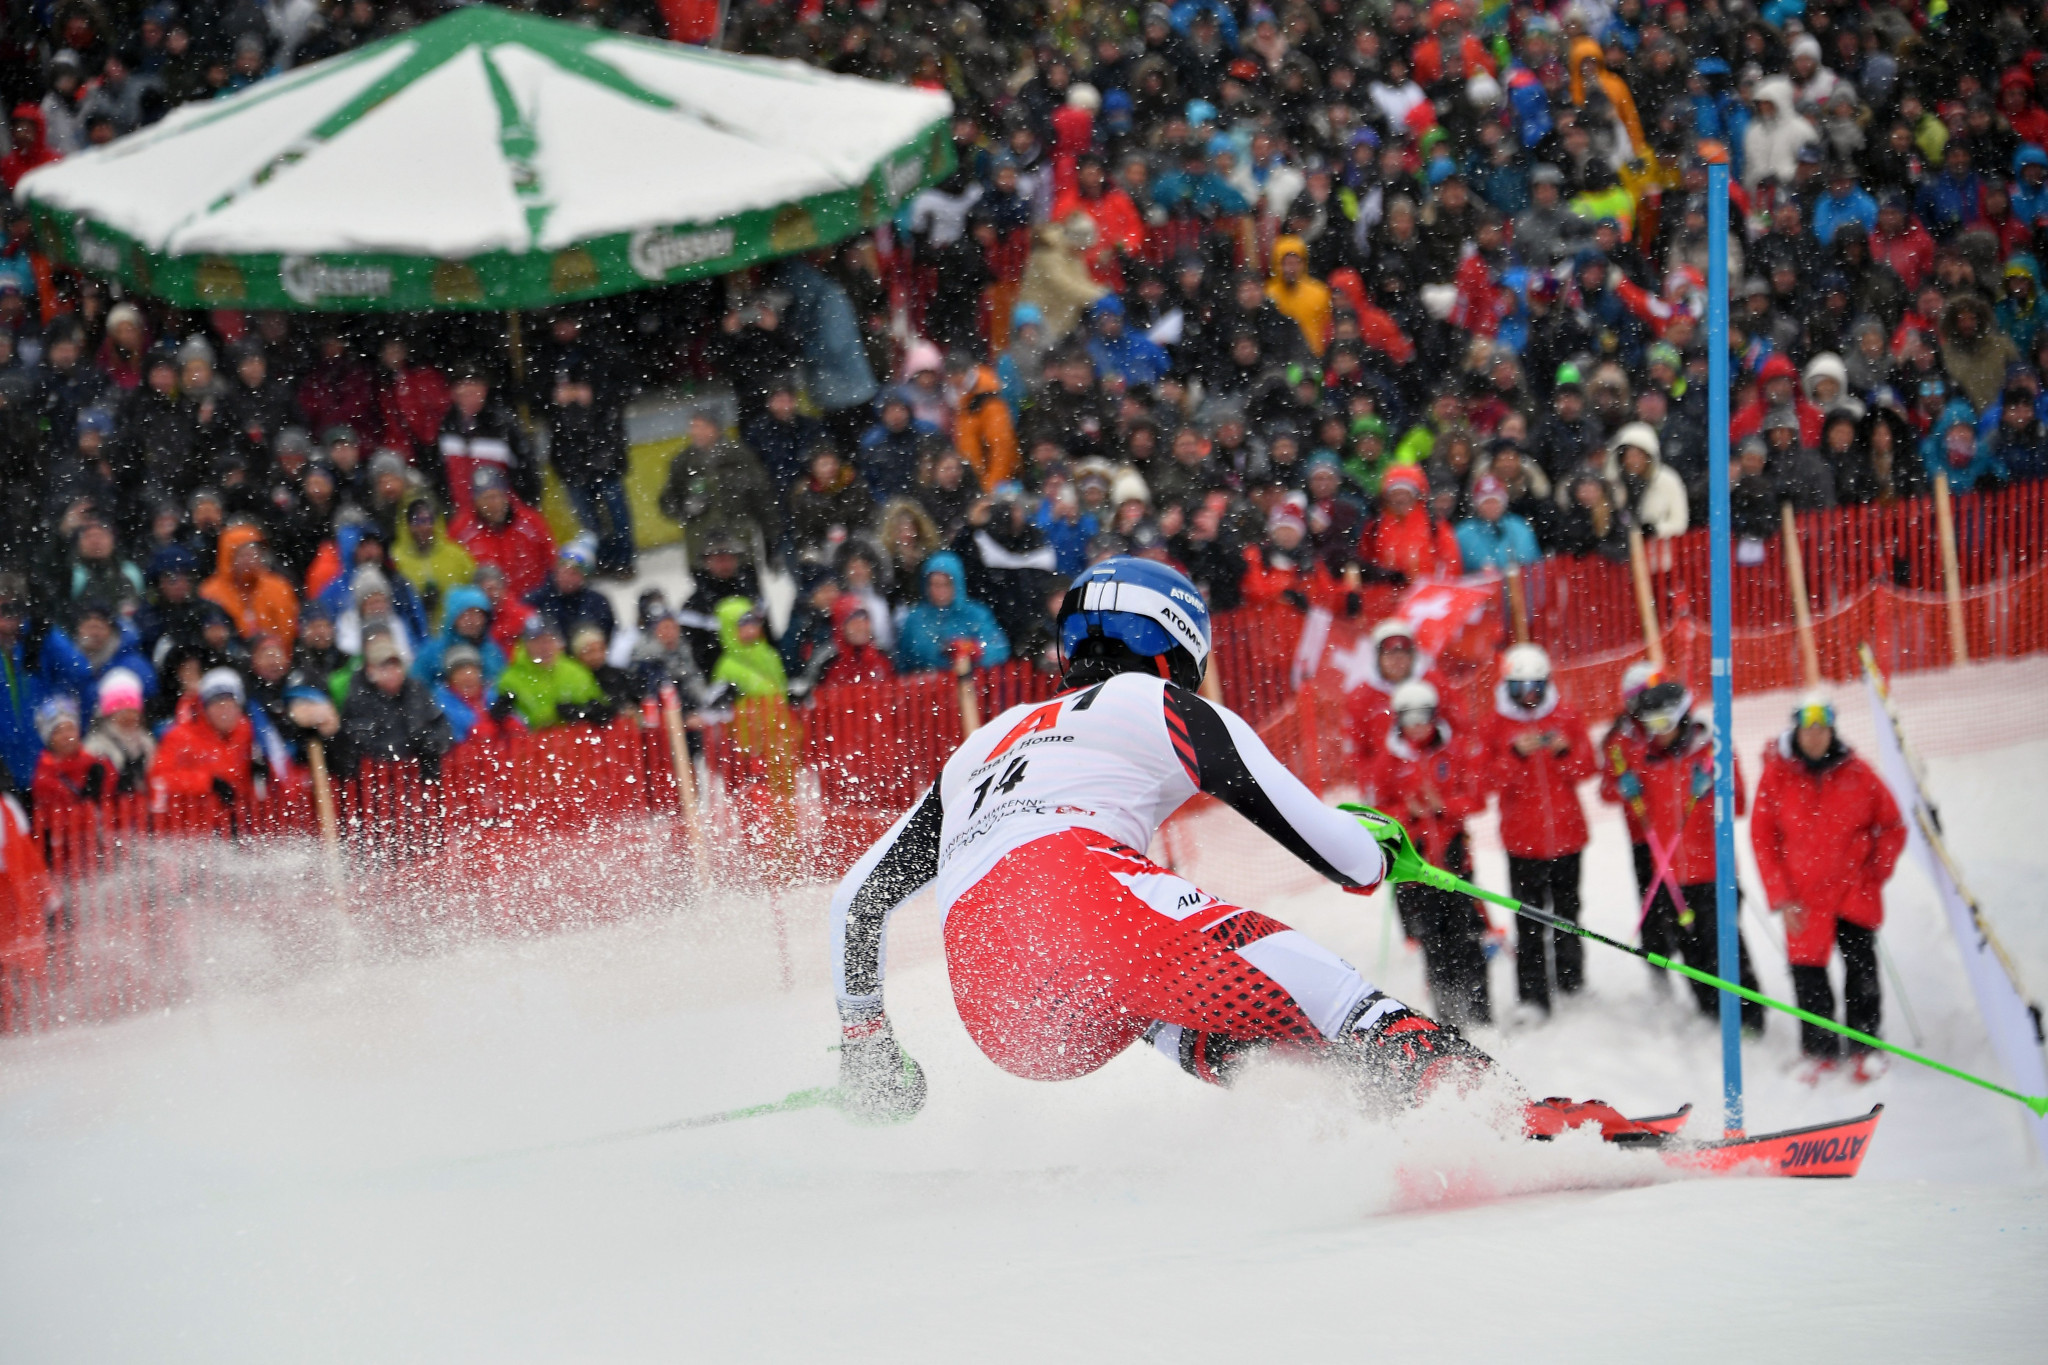 Austria's Marco Schwarz proved a strong slalom skier to round off the medal positions ©Getty Images